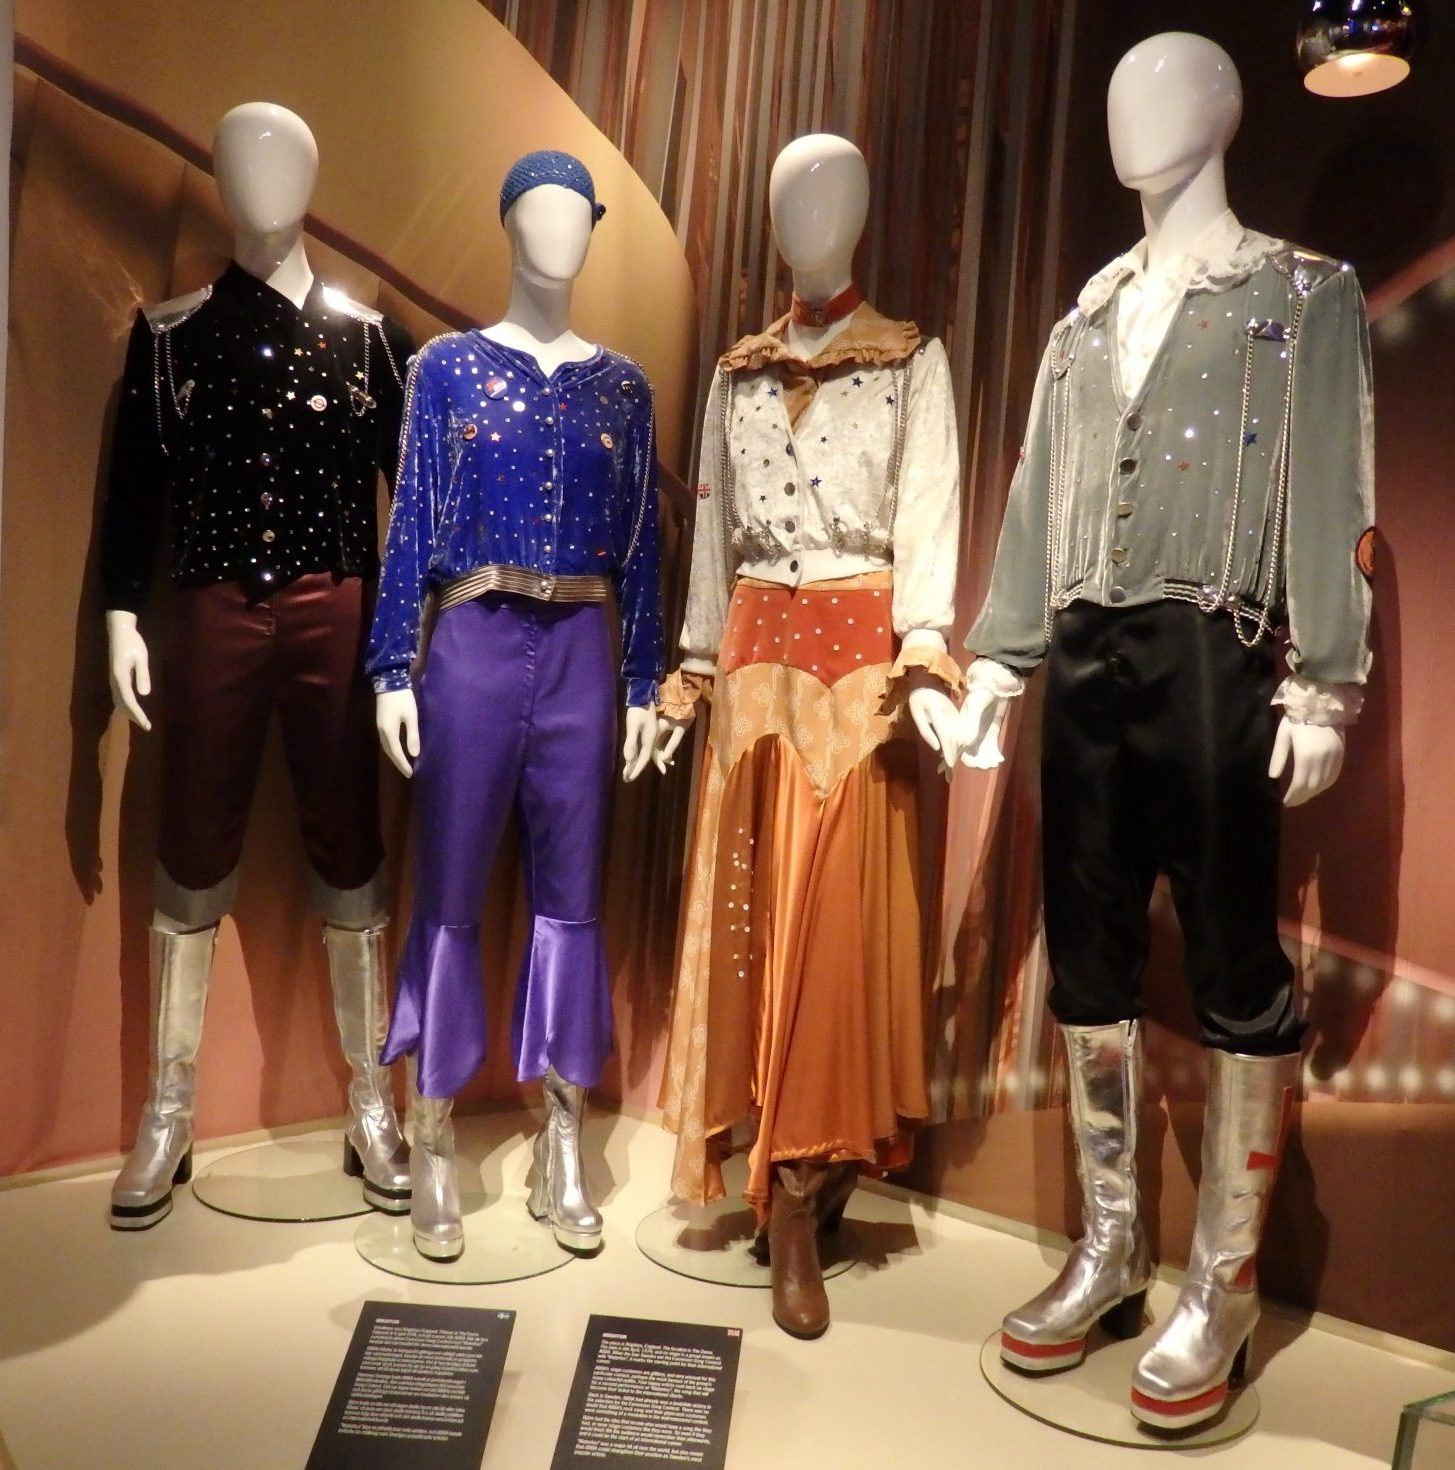 the Eurovision outfits